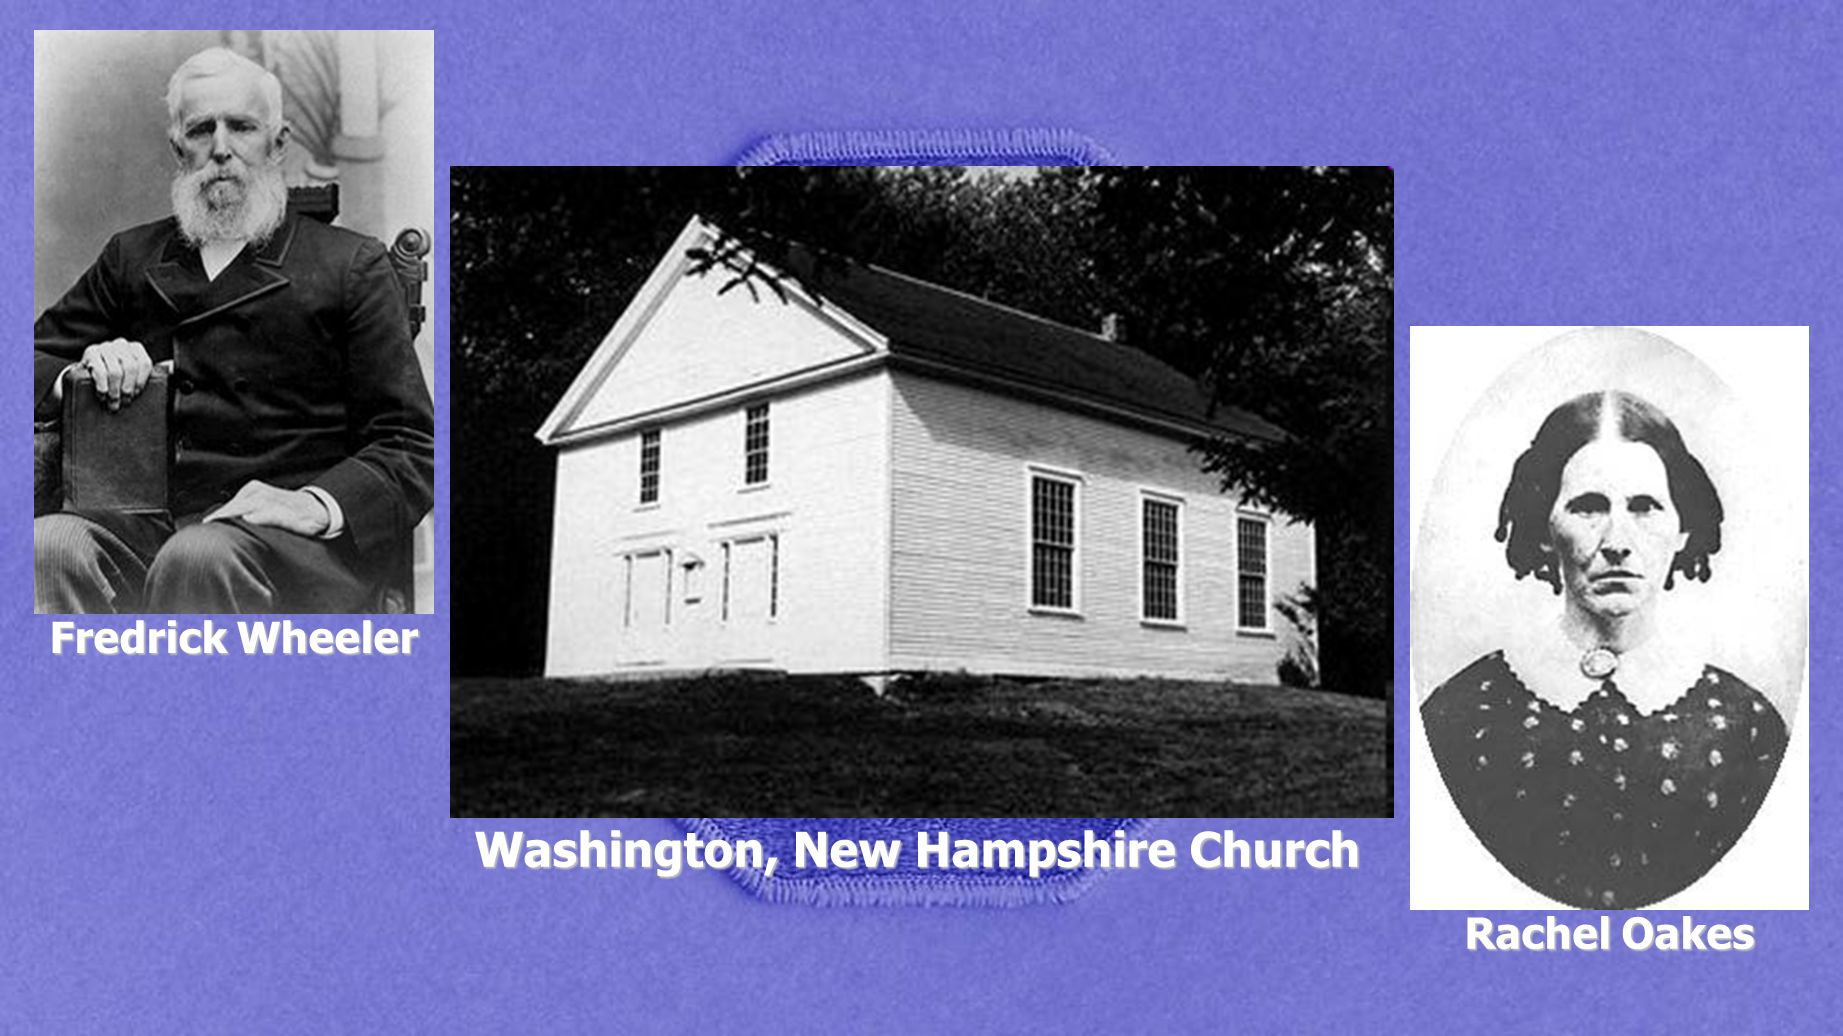 Washington, New Hampshire Church